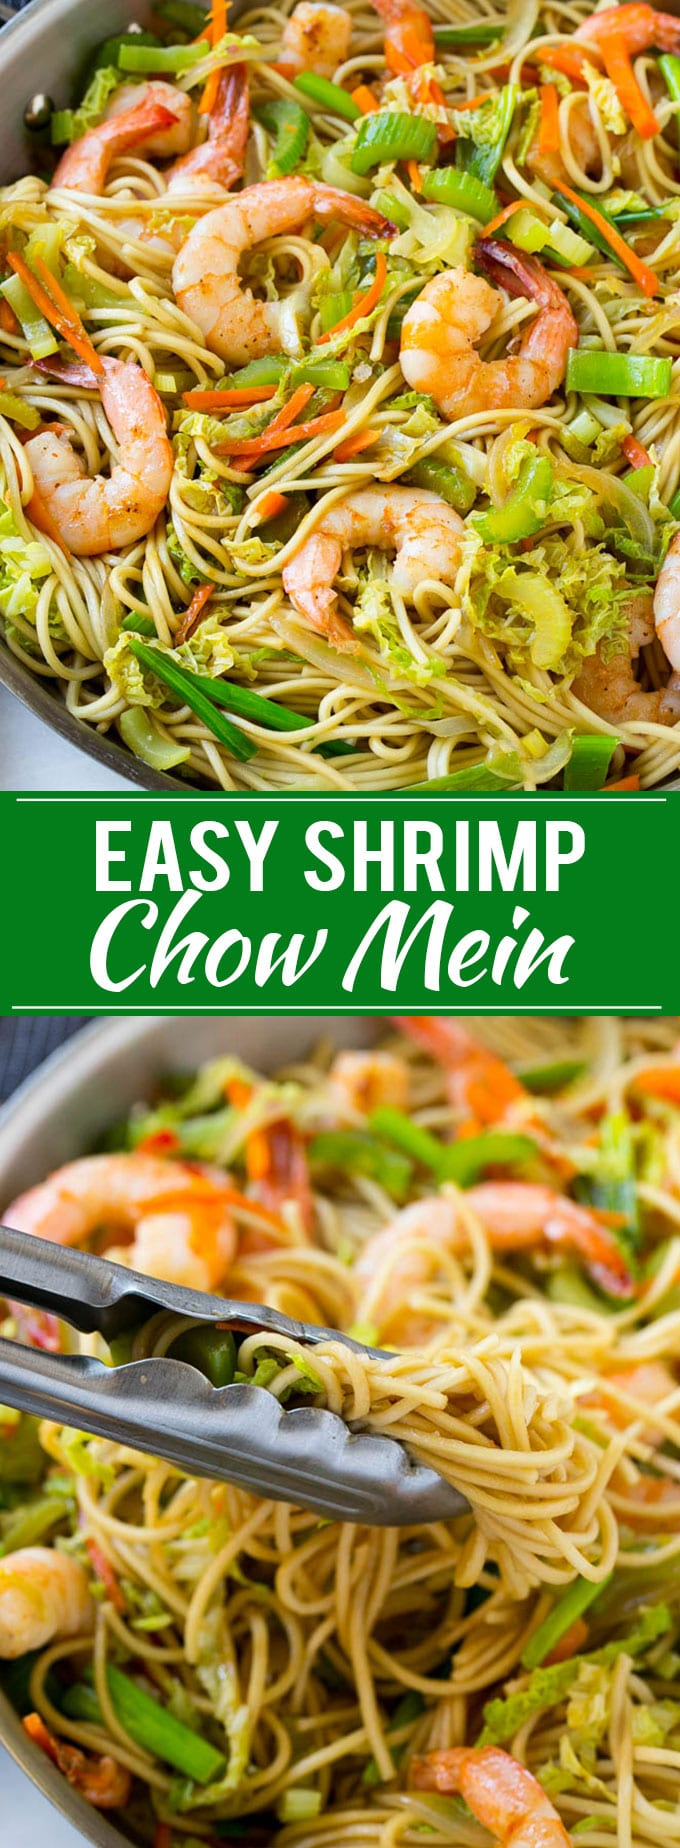 Shrimp Chow Mein Recipe | One Pot Meal Shrimp Chow Mein | Best Shrimp Chow Mein | Easy Shrimp Chow Mein | One Pot Meal Chow Mein | Chow Mein Recipe #asian #chowmein #shrimpchowmein #onepotmeal #asiannoodle #dinner #dinneratthezoo